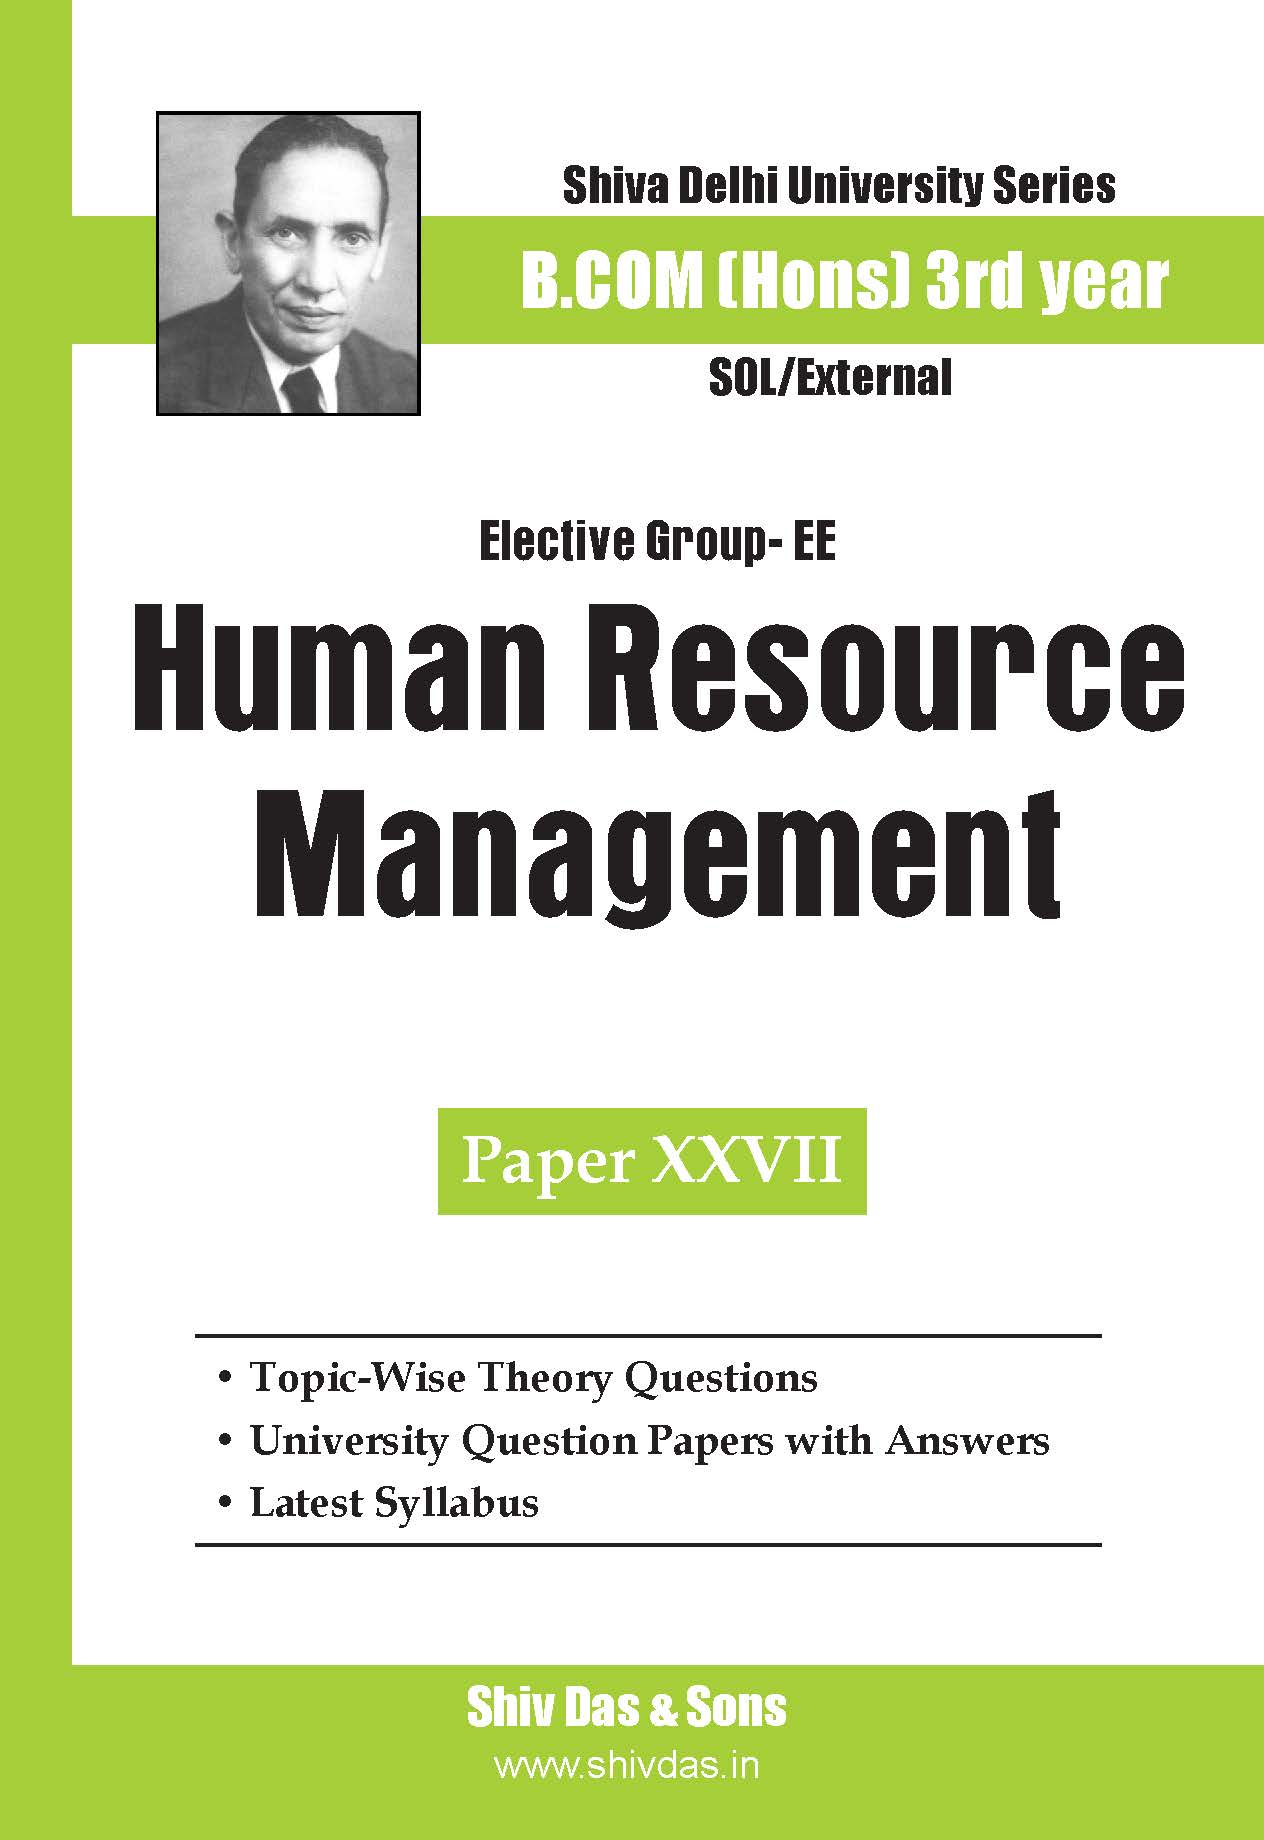 B.Com Hons-SOL/External-3rd Year-Human Resource Management-Shiv Das-Delhi University Series